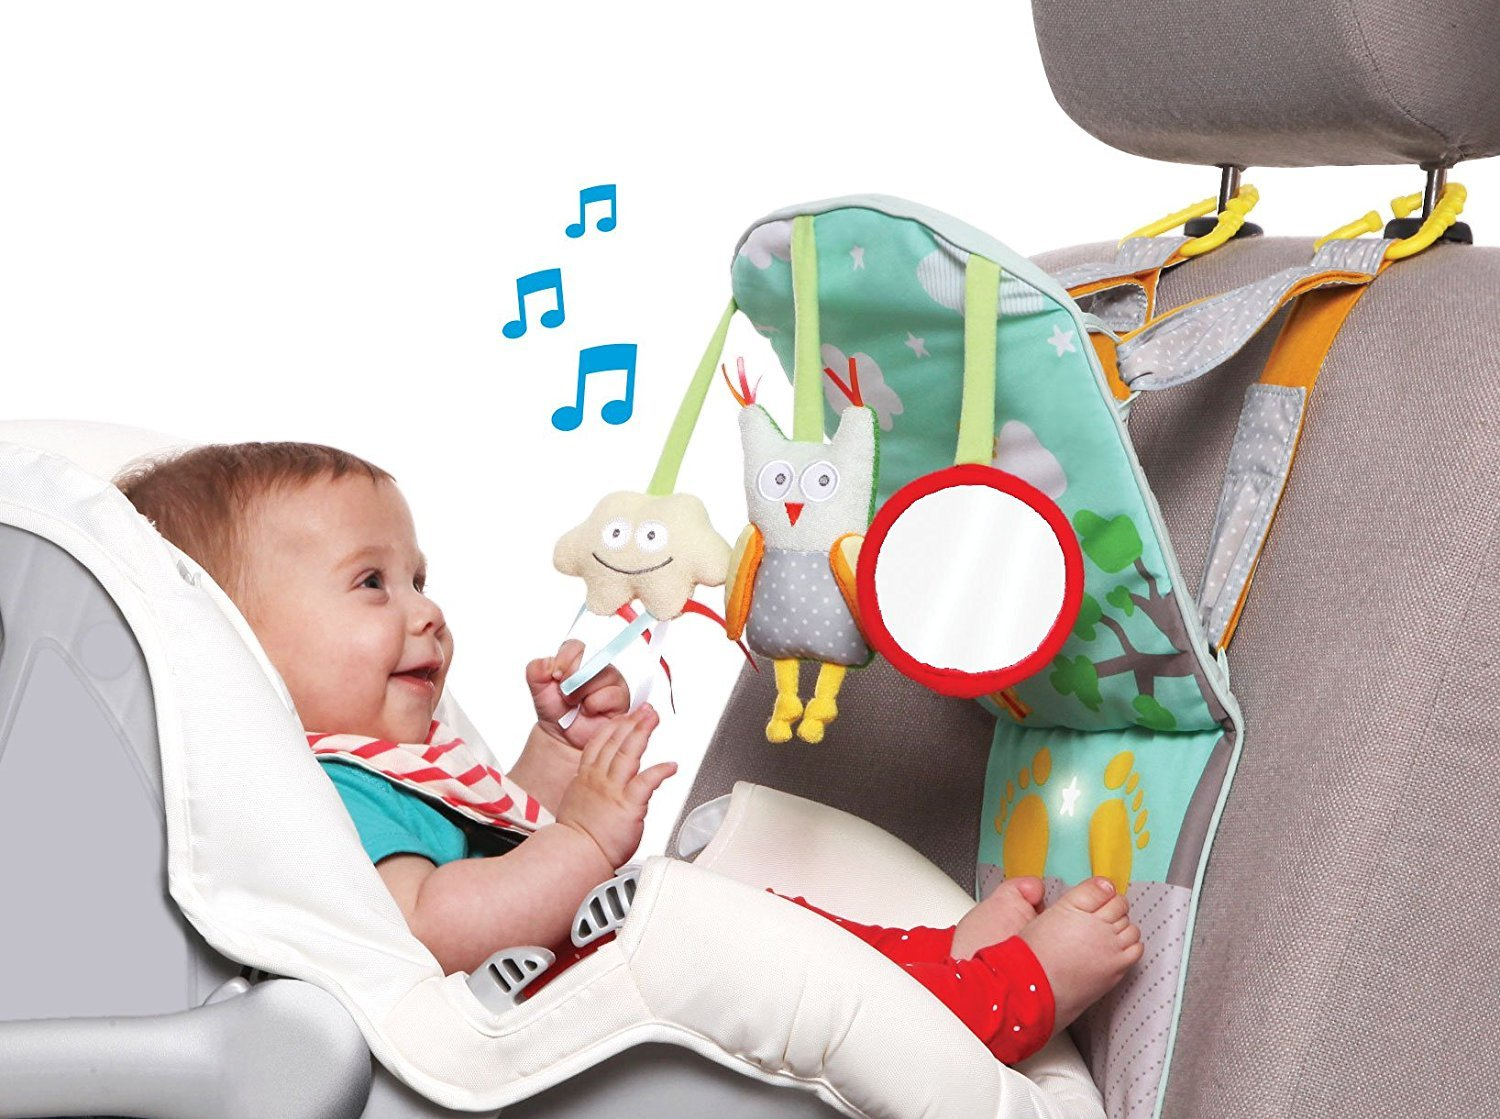 Taf Toys Play & Kick Car Seat Toy   Baby's Activity & Entertaining Center, For Easier Drive And Easier Parenting  Keep Baby Calm  Lights & Musical, Baby Safe Mirror, Detachable Toys